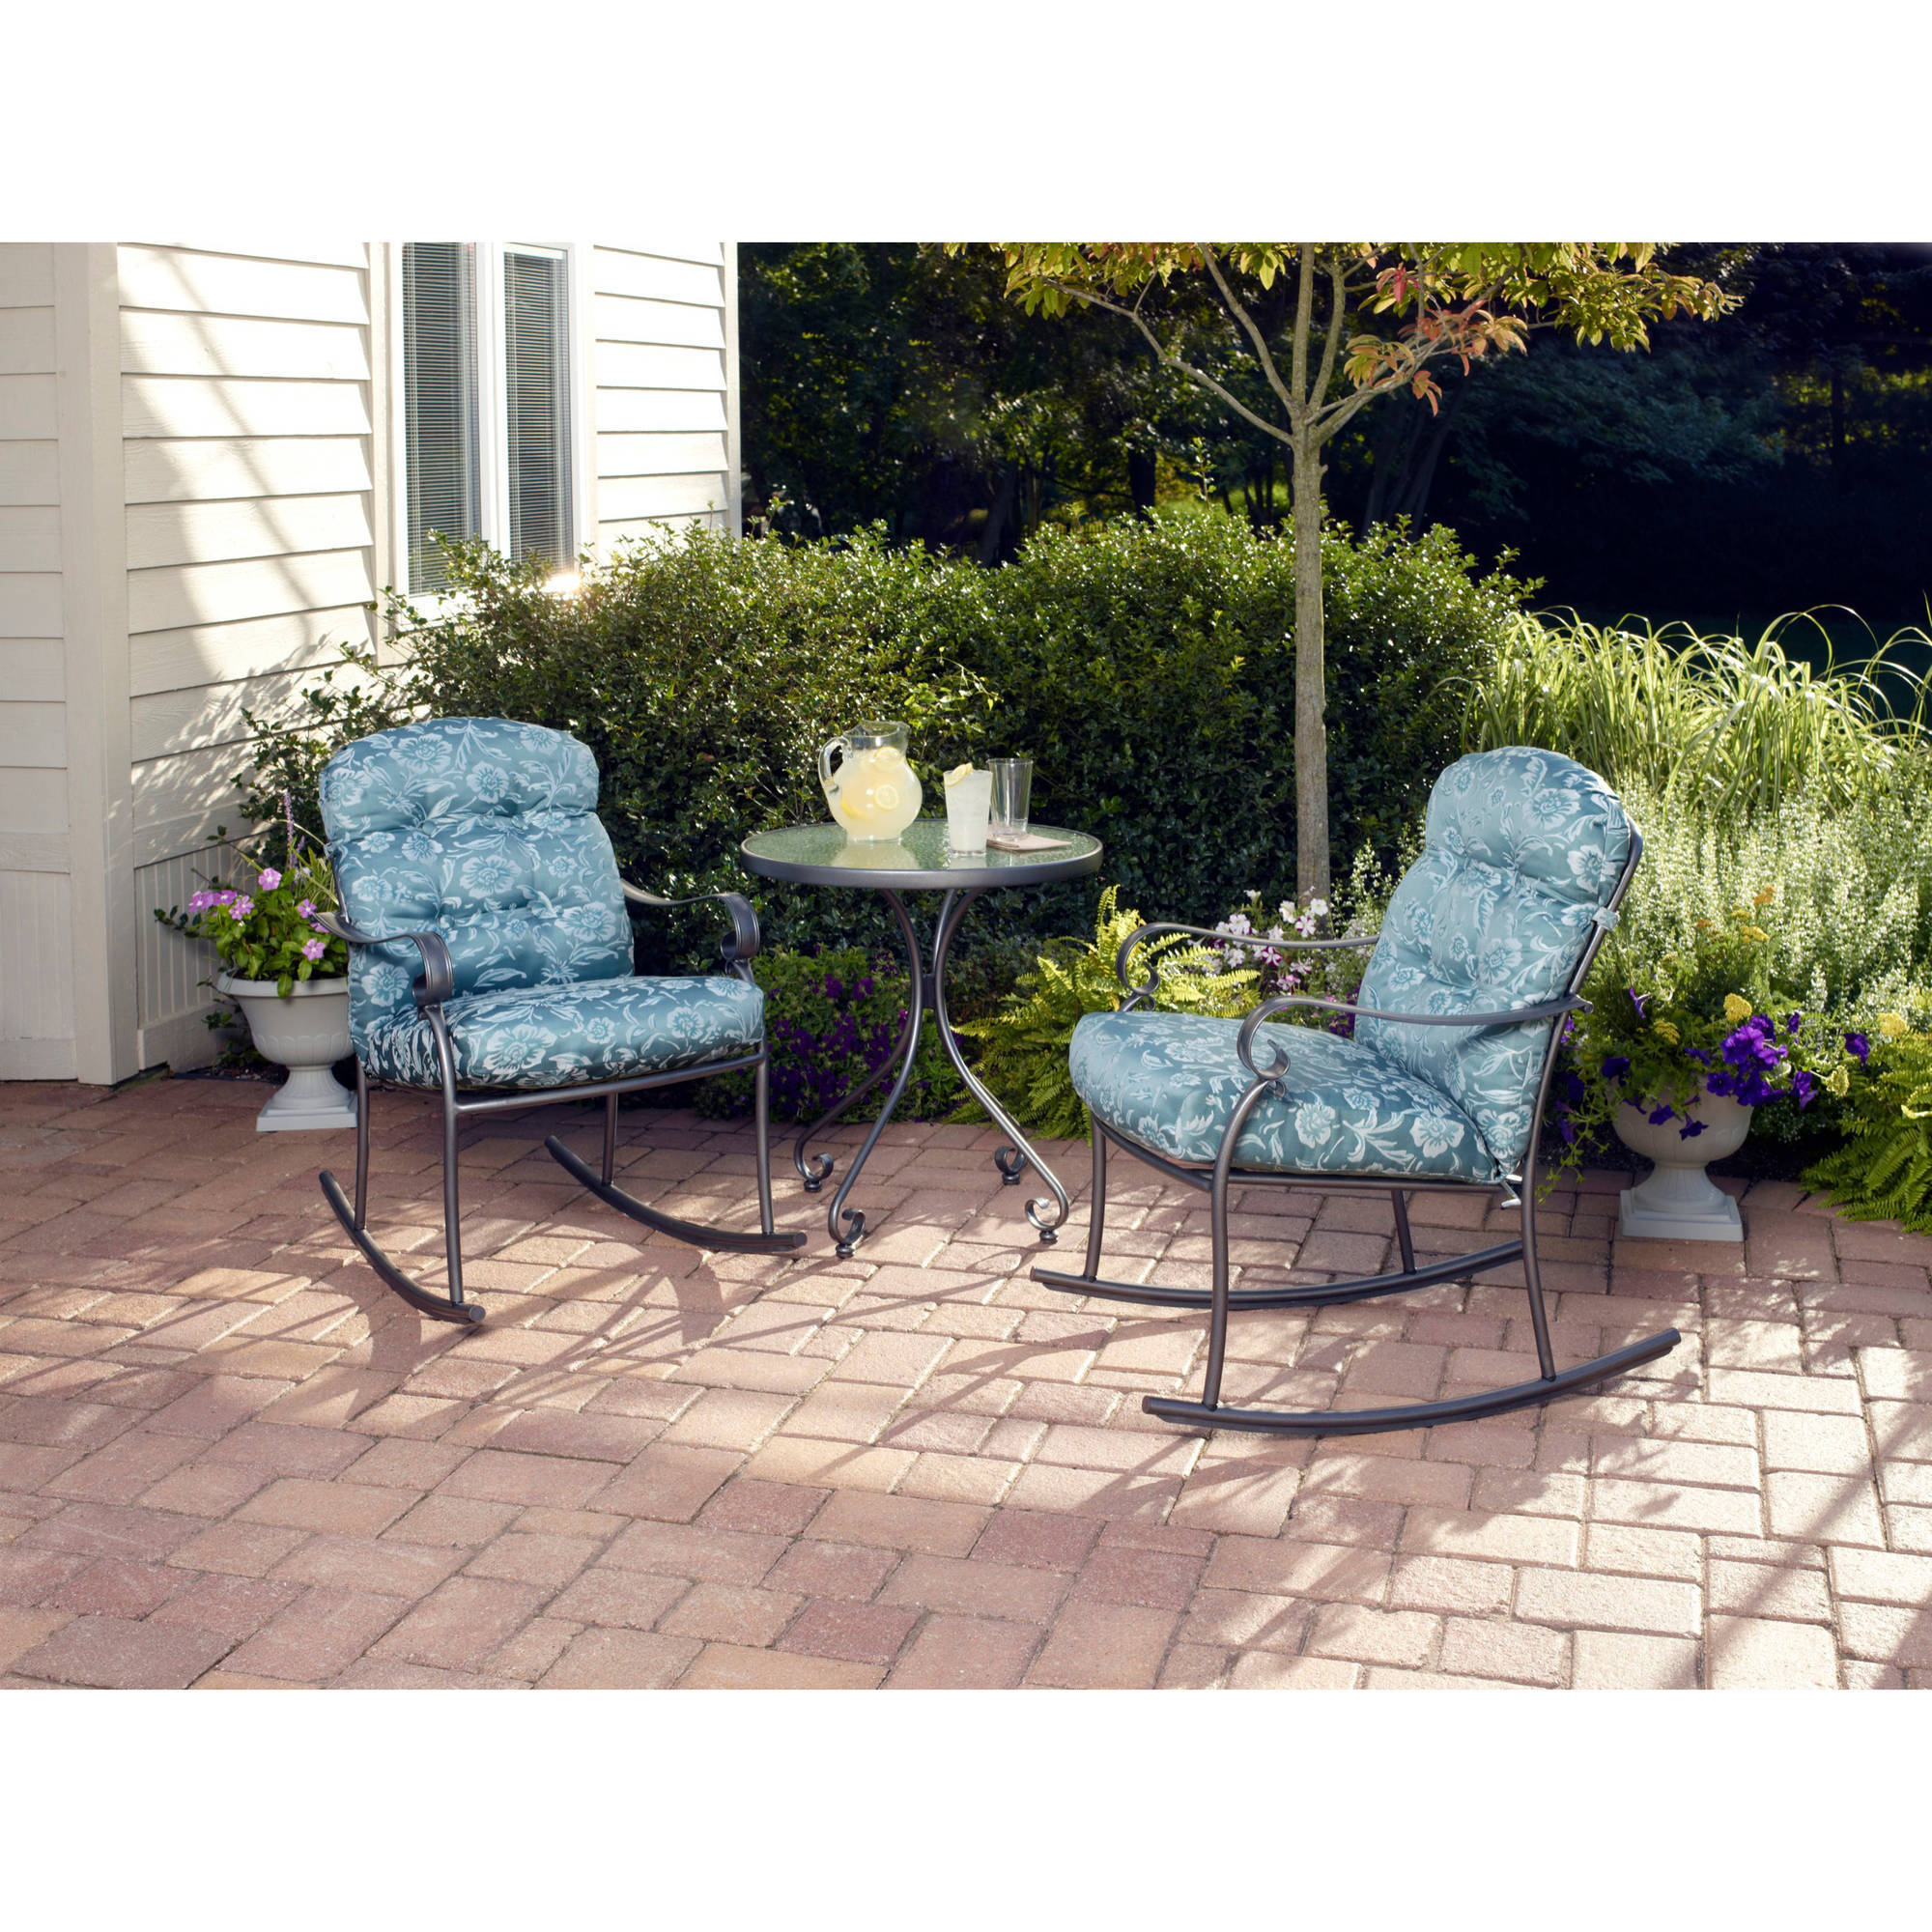 Mainstays Willow Springs 3-Piece Rocking Outdoor Bistro Set, Blue, Seats 2